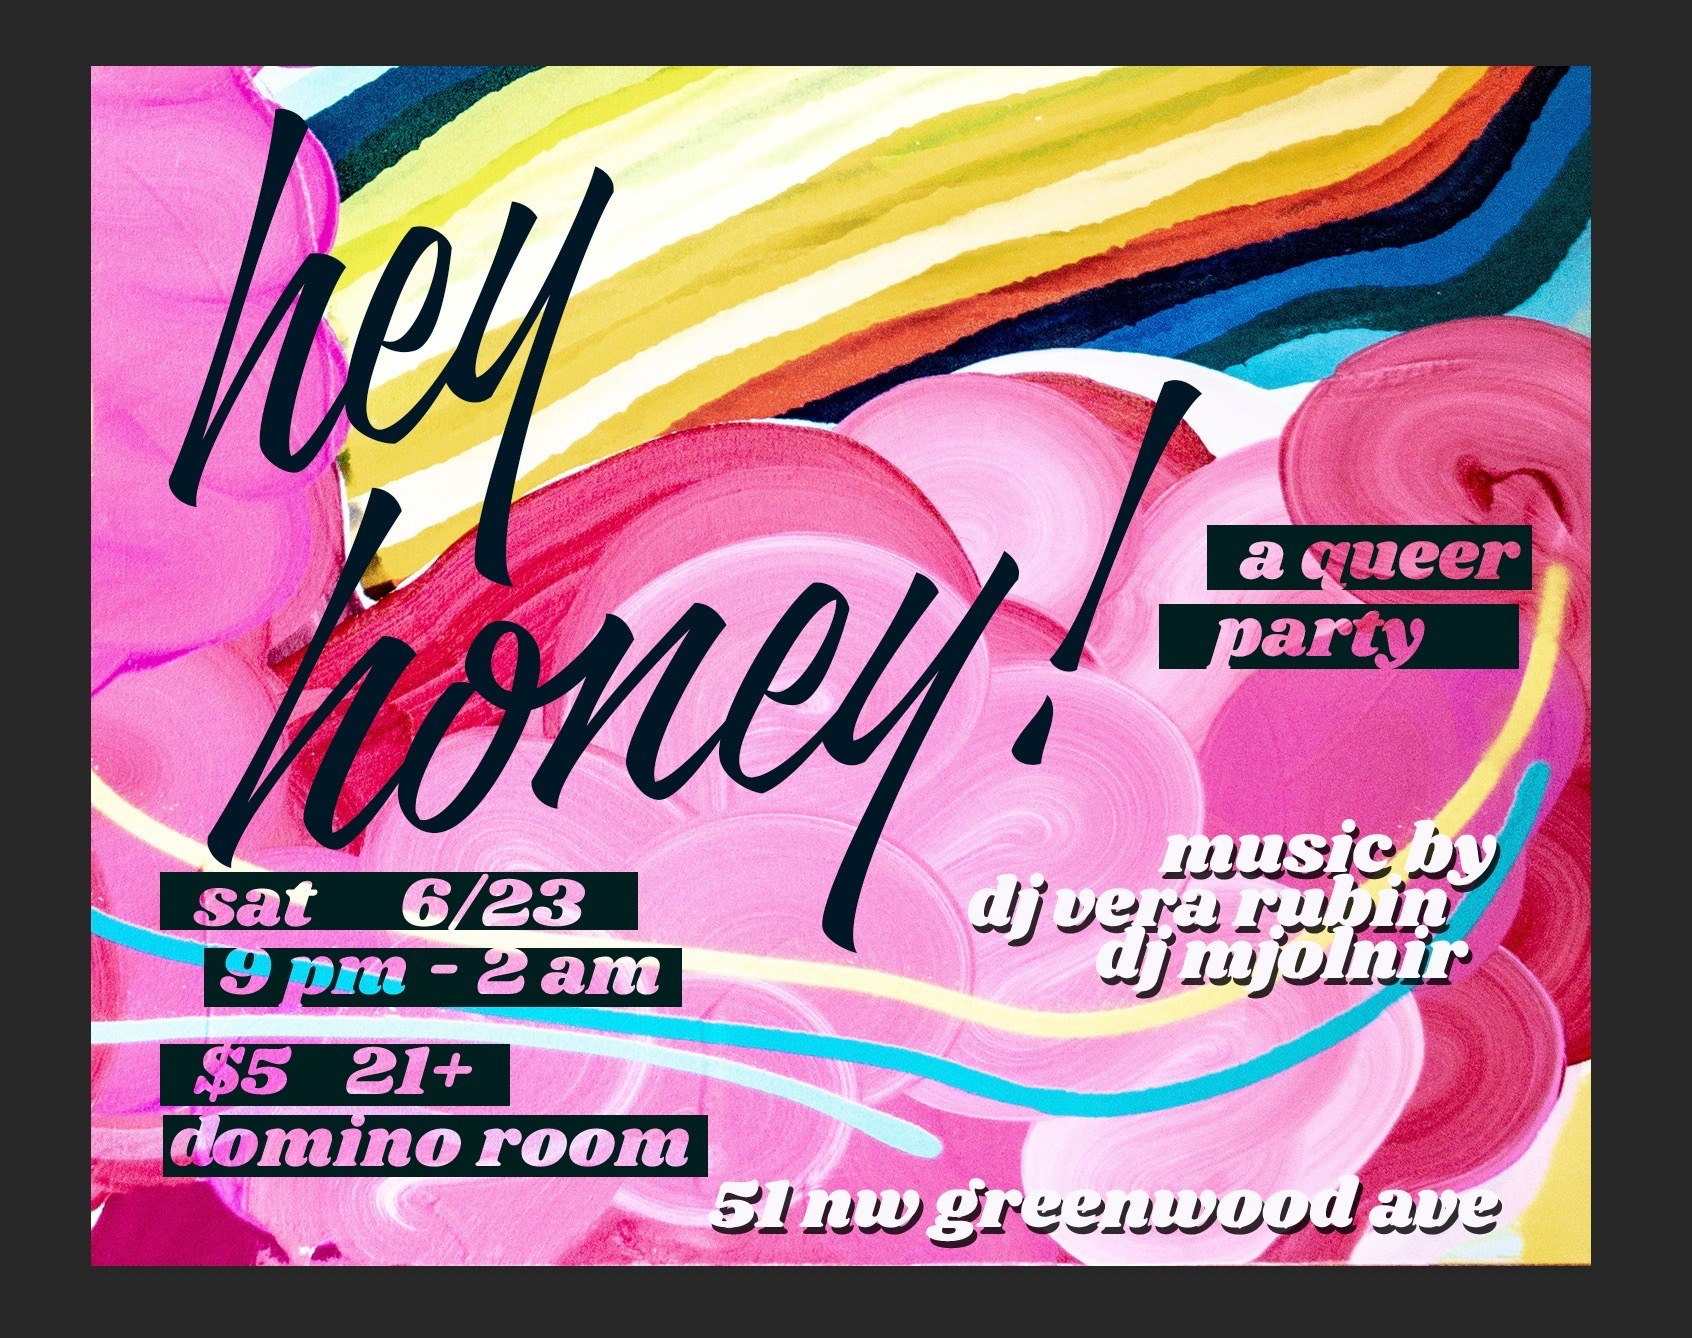 Hey Honey a Queer Party